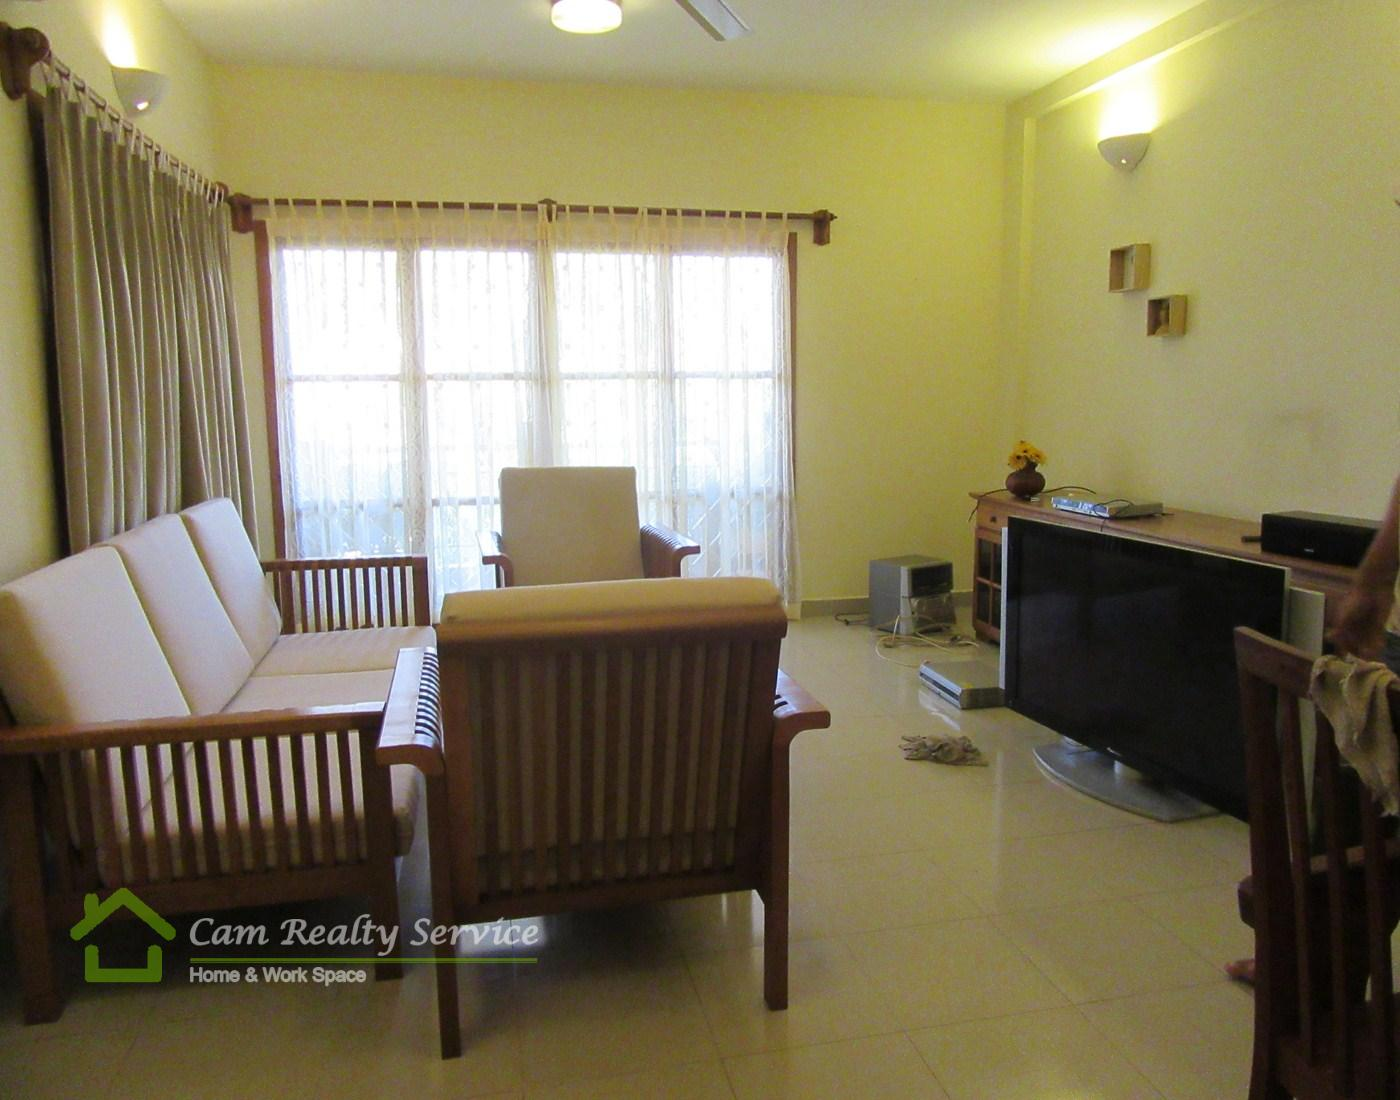 BKK1 area  Khmer style 1 bedroom apartment available for rent  600$/month